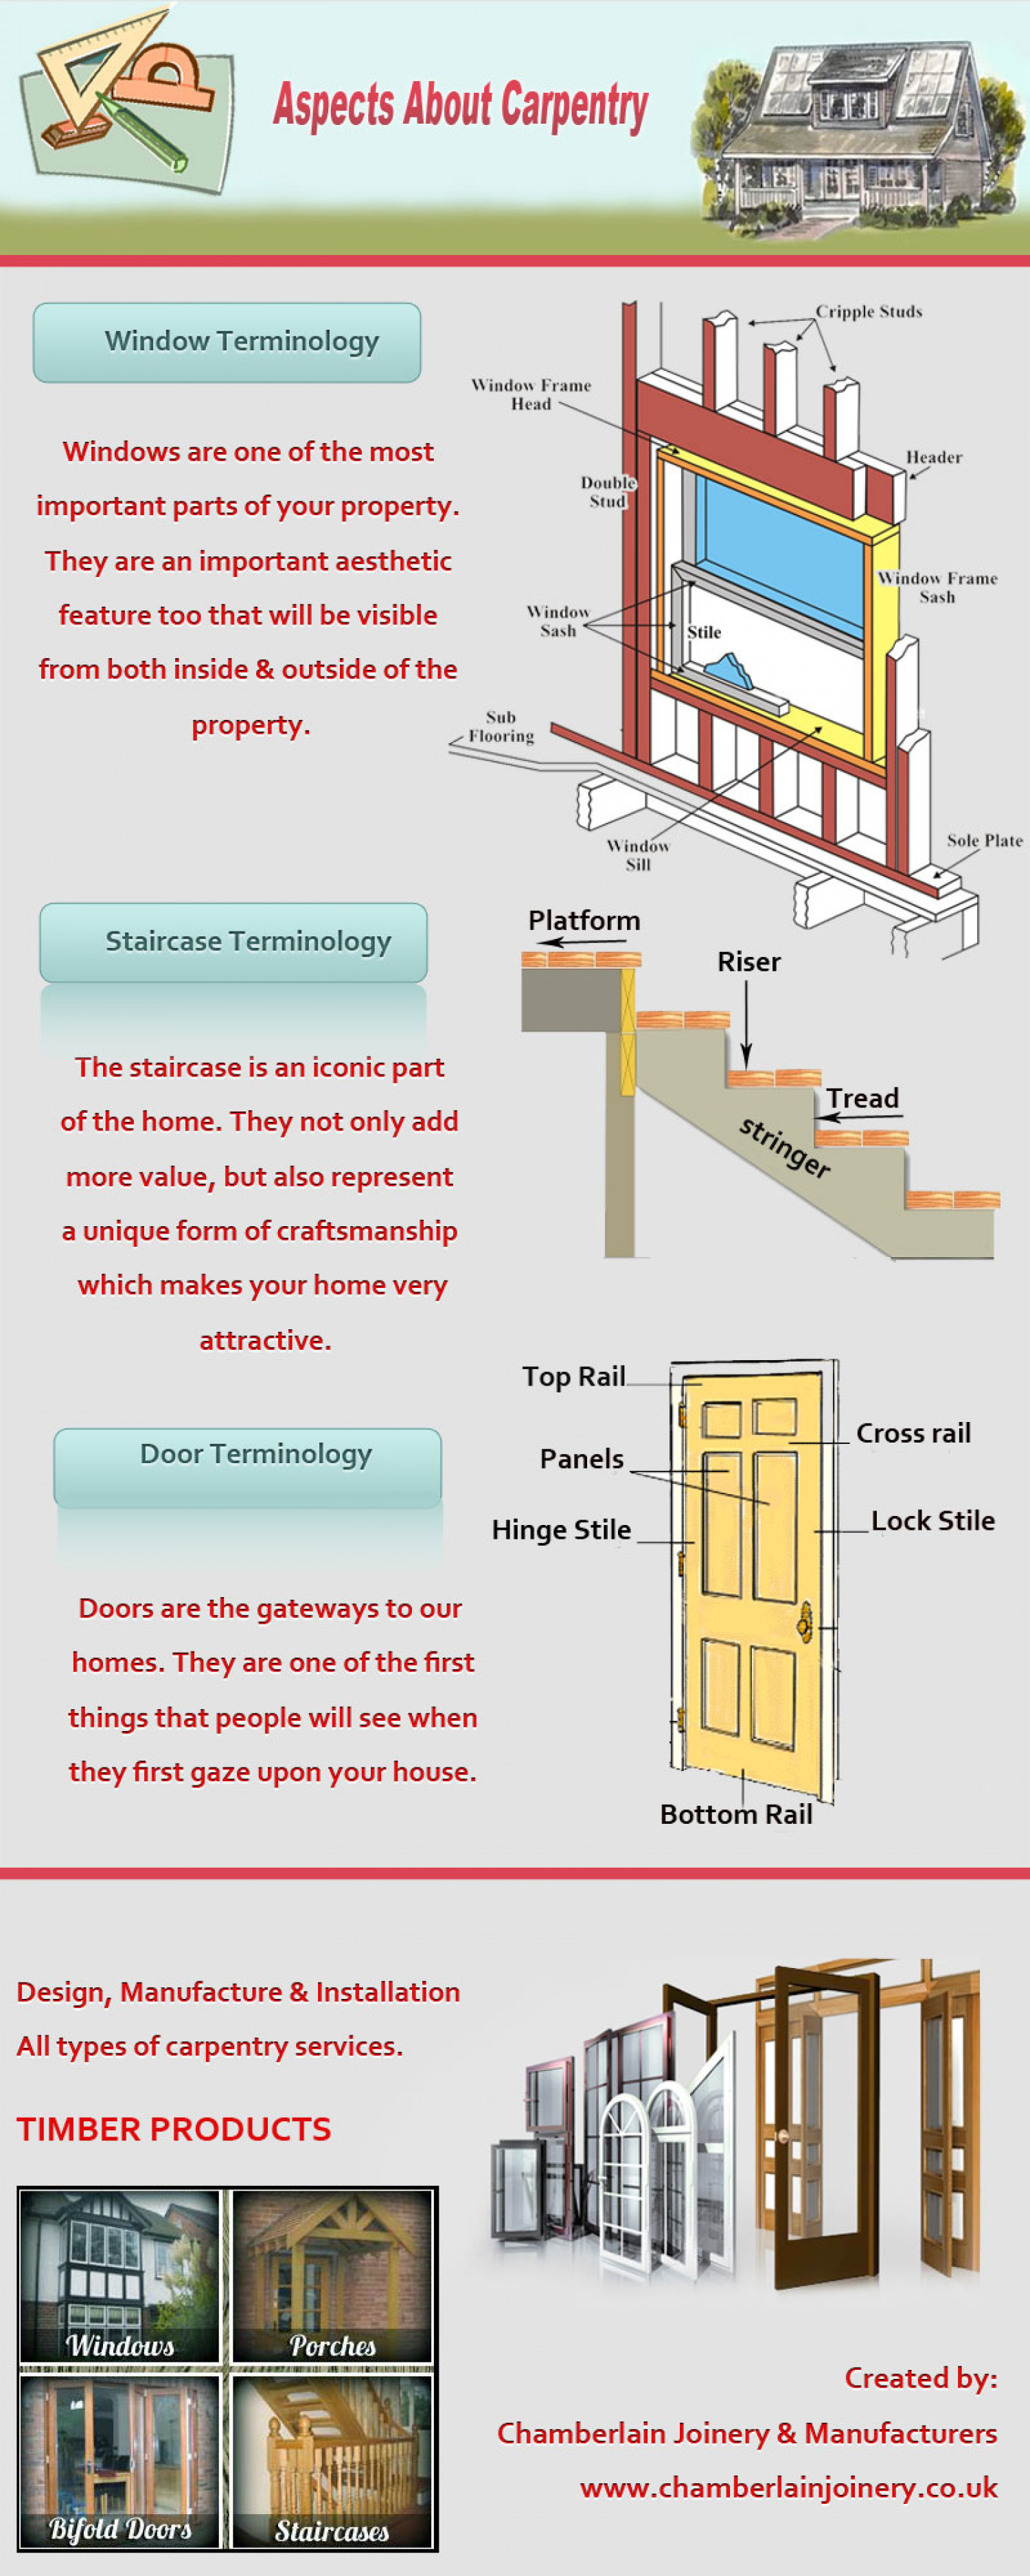 Aspects about Carpentry - Chamberlain joinery & Manufacturers Infographic